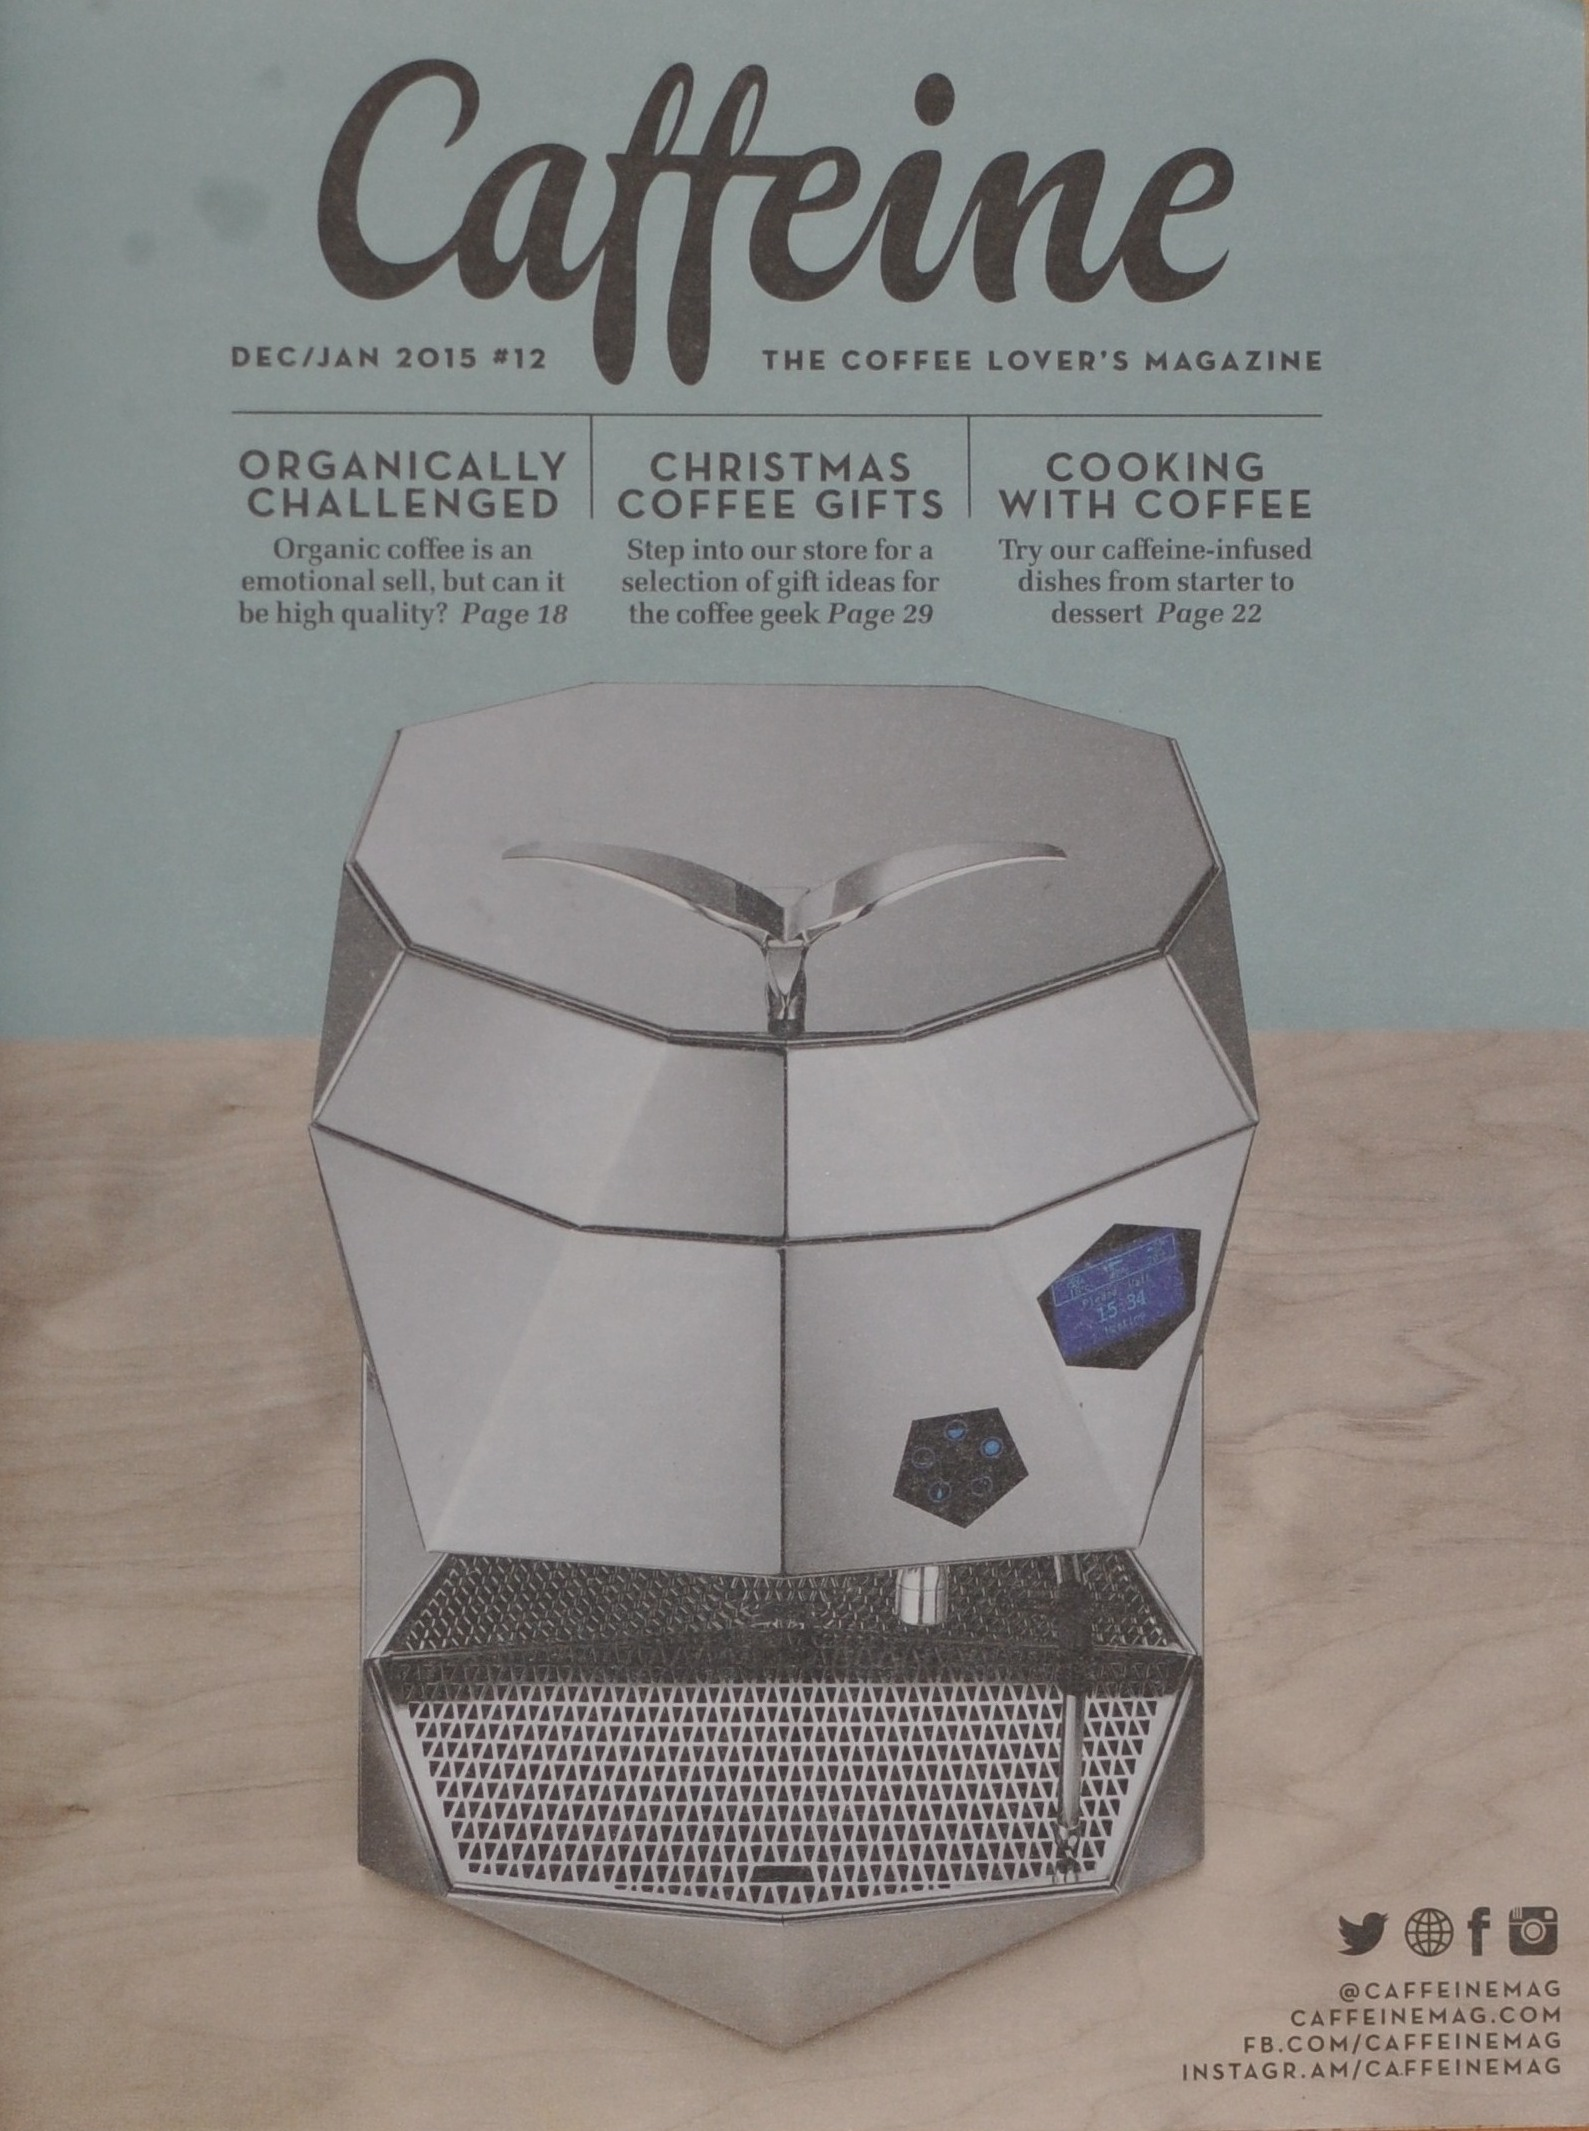 The front cover of Issue 12 of Caffeine Magazine with the very angular Victoria Arduino Theresia espresso machine